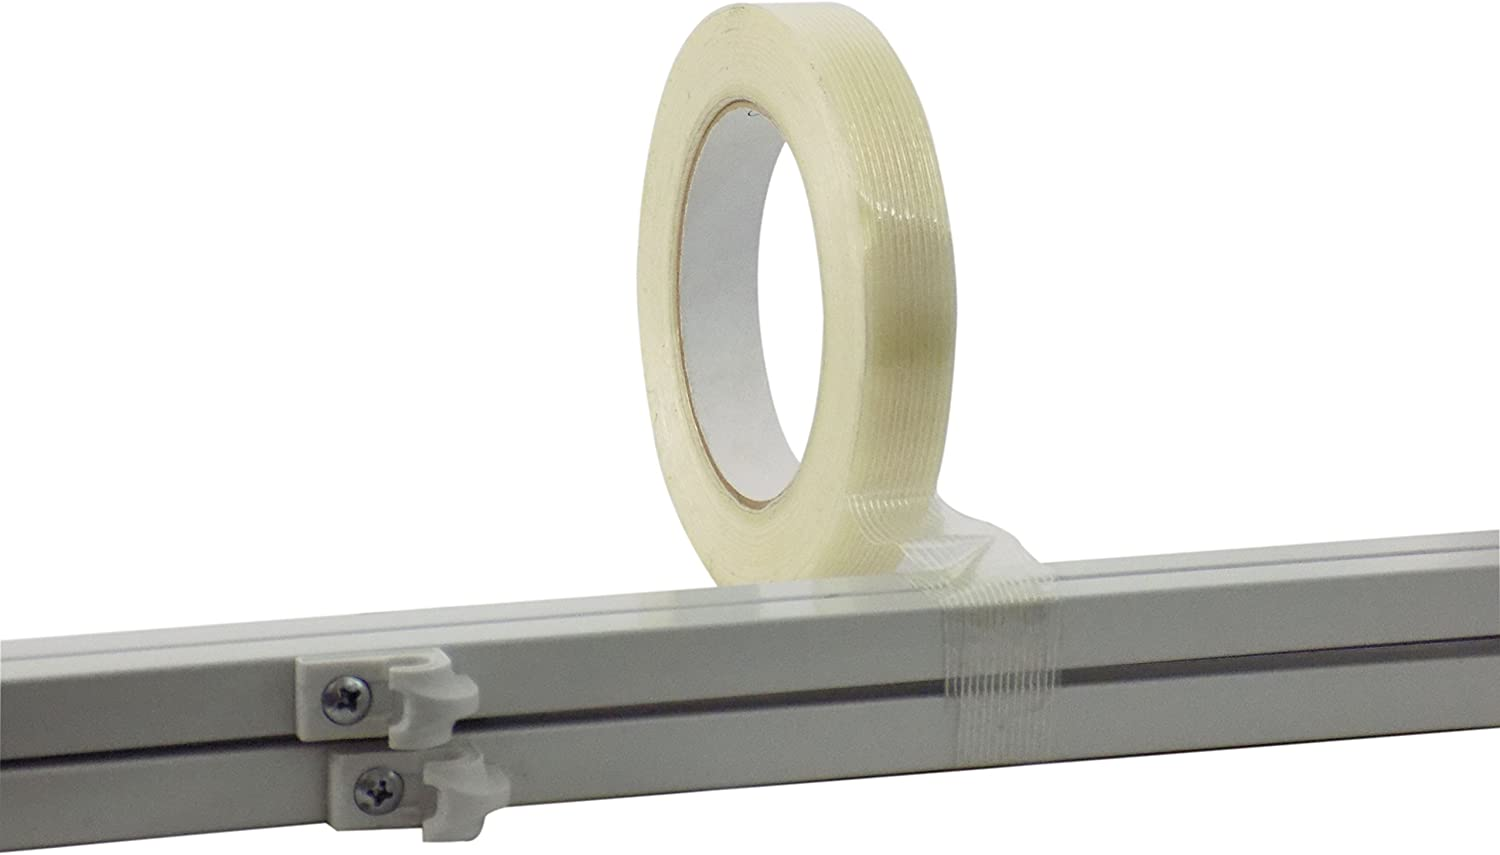 Wide x 60 yds. MAT Commodity Grade Fiberglass Reinforced Filament Strapping Tape Filaments Run Lengthwise Pack of 36 1 in